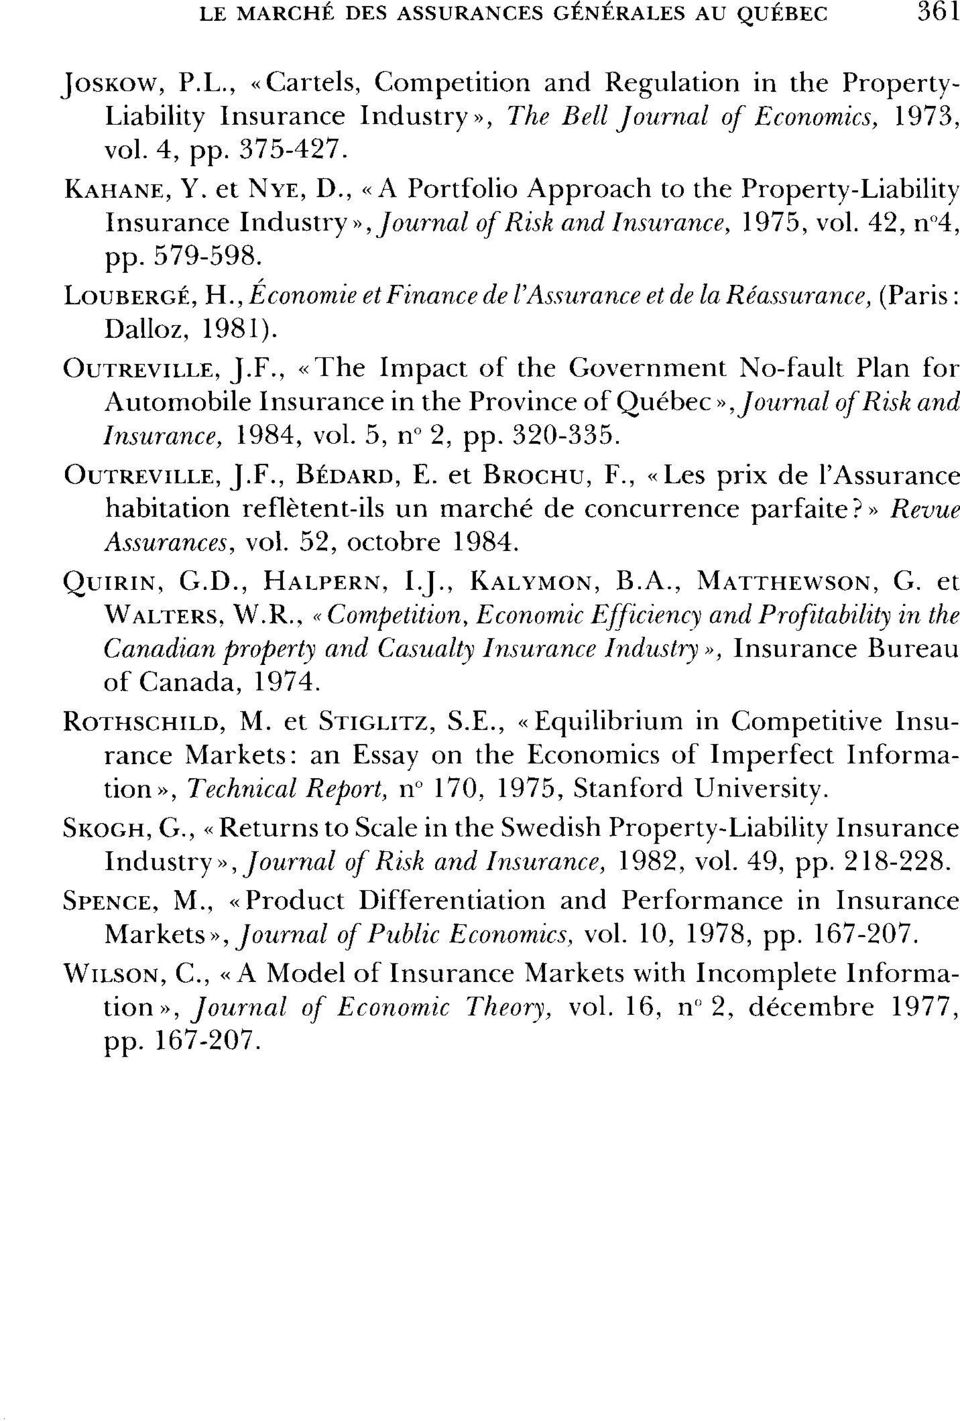 , Économie et Finance de VAssurance et de la Réassurance, (Paris : Dalloz, 1981). OUTREVILLE, J.F., «The Impact of the Government No-fault Plan for Automobile Insurance in the Province of Québec», Journal ofrisk and Insurance, 1984, vol.